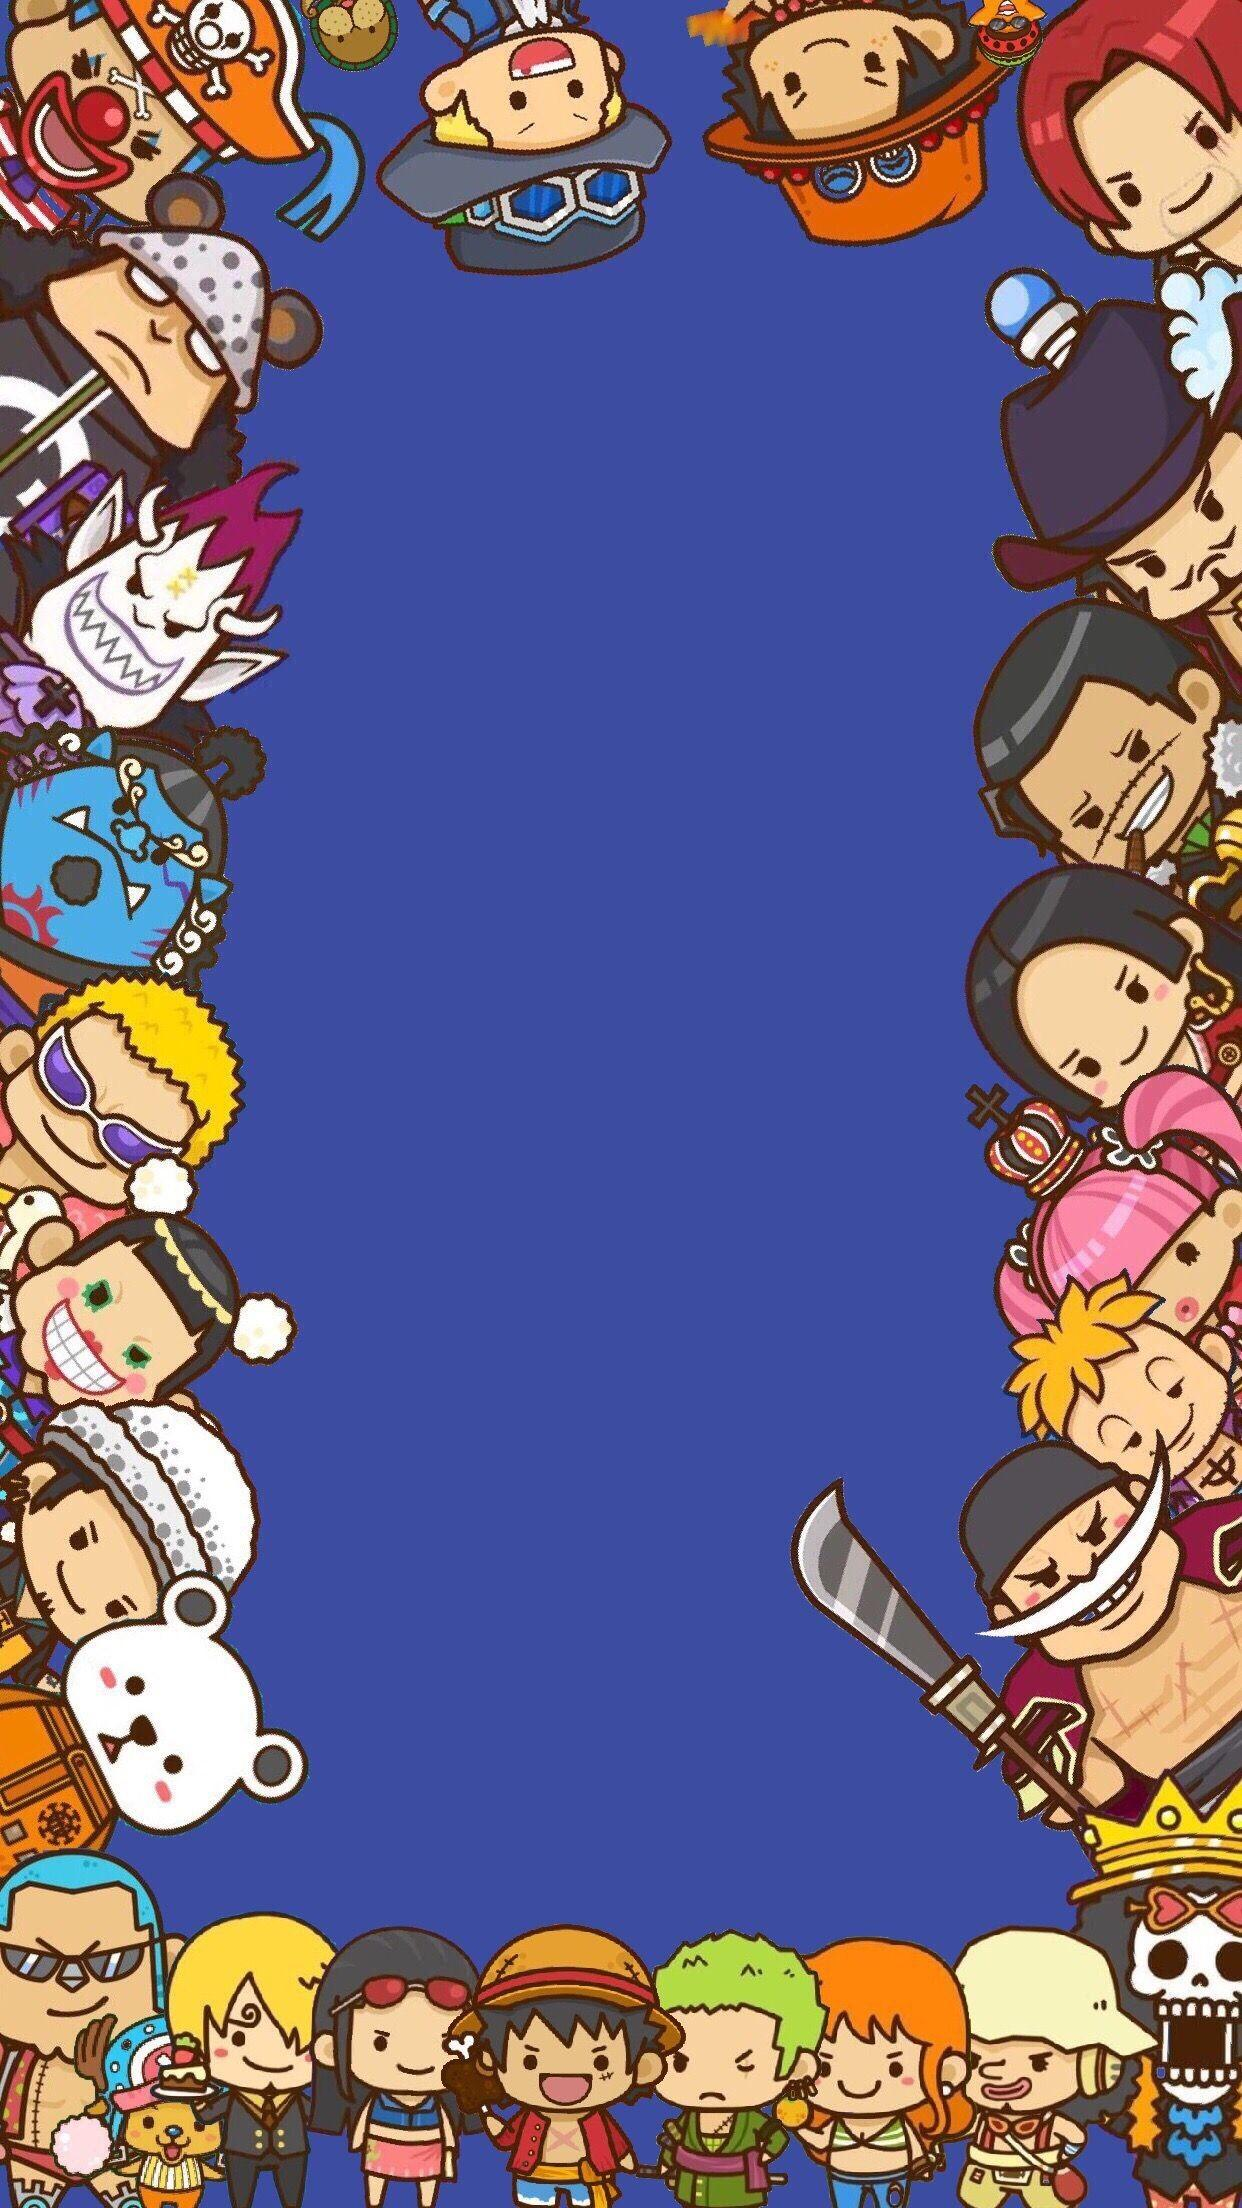 Wallpaper Iphone 6s One Piece Wallpaper Doraemon